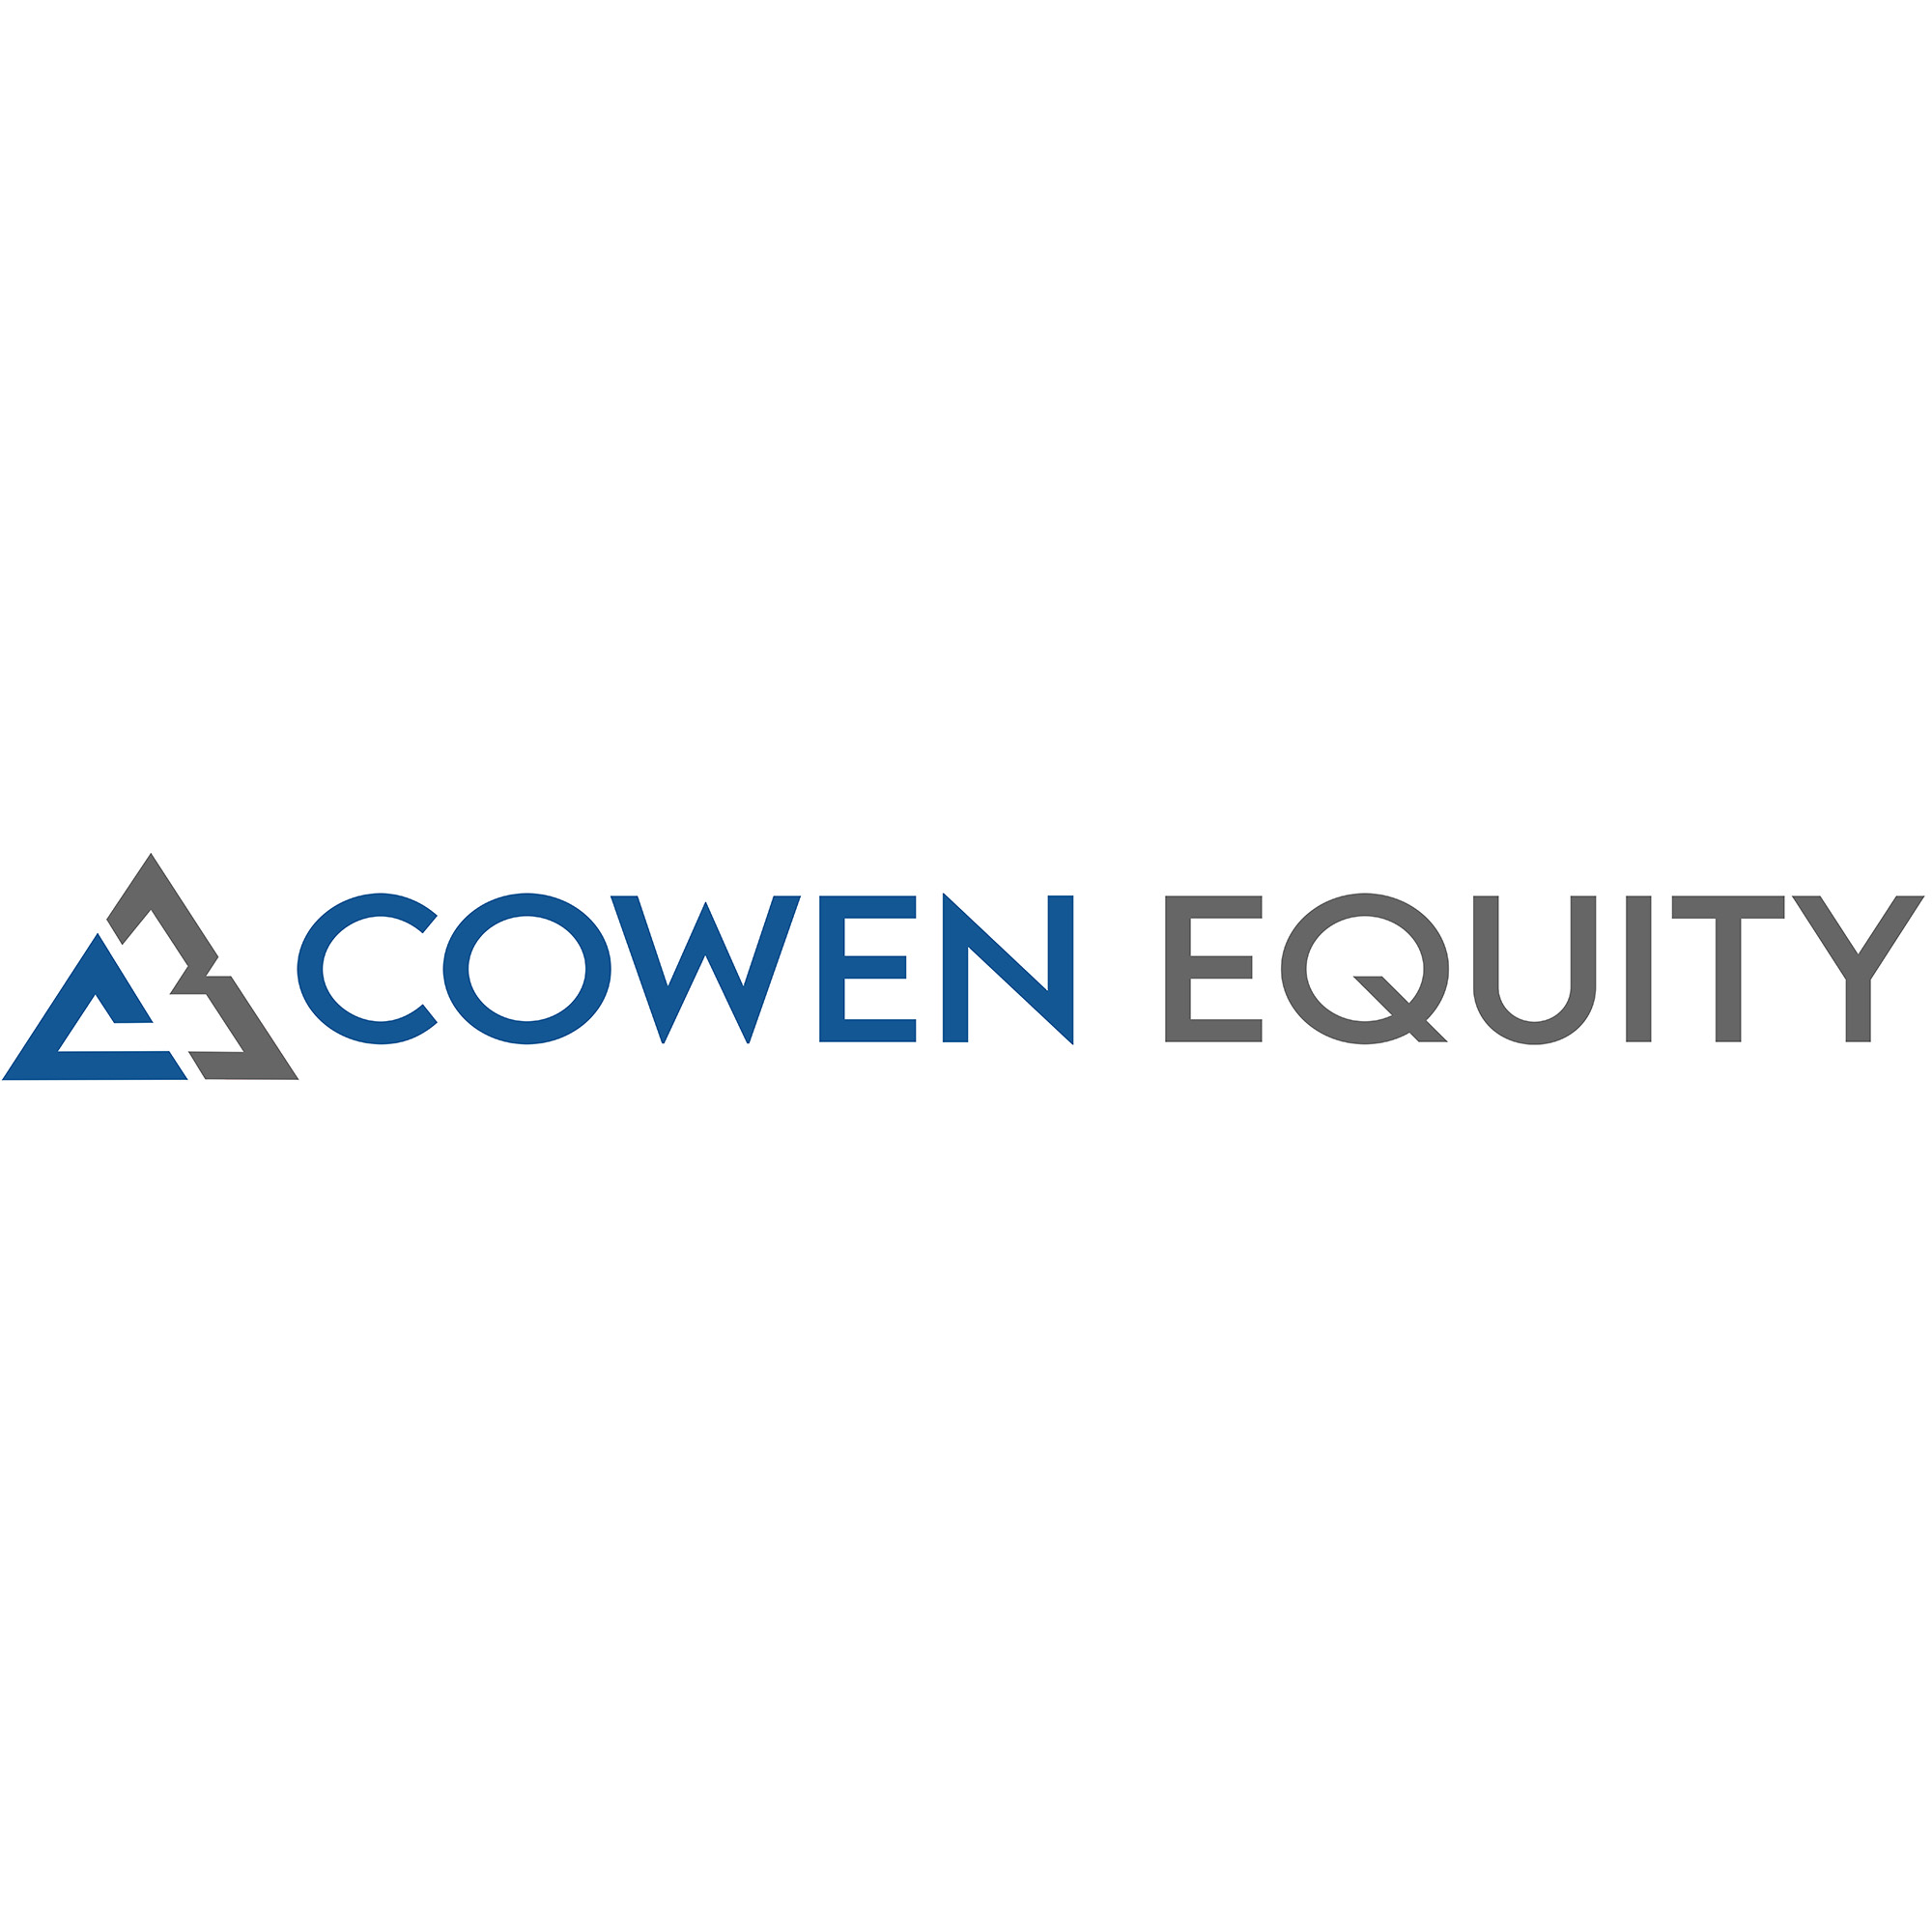 Cowen Equity Corp. switches focus to help with R&D around COVID-19